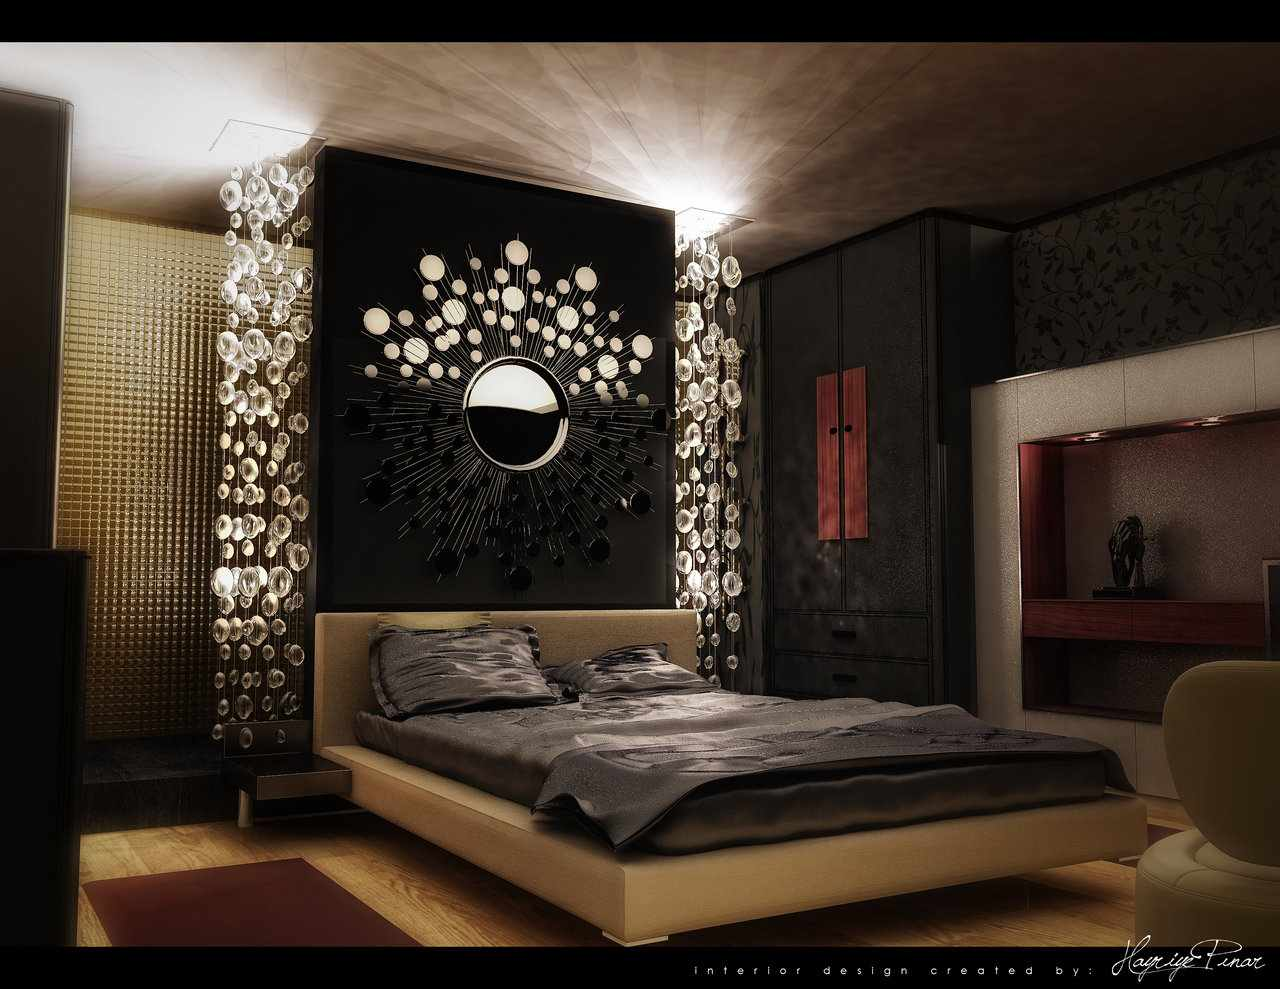 ikea bedroom ideas ikea bedroom 2014 ideas ForBedroom Ideas Pictures